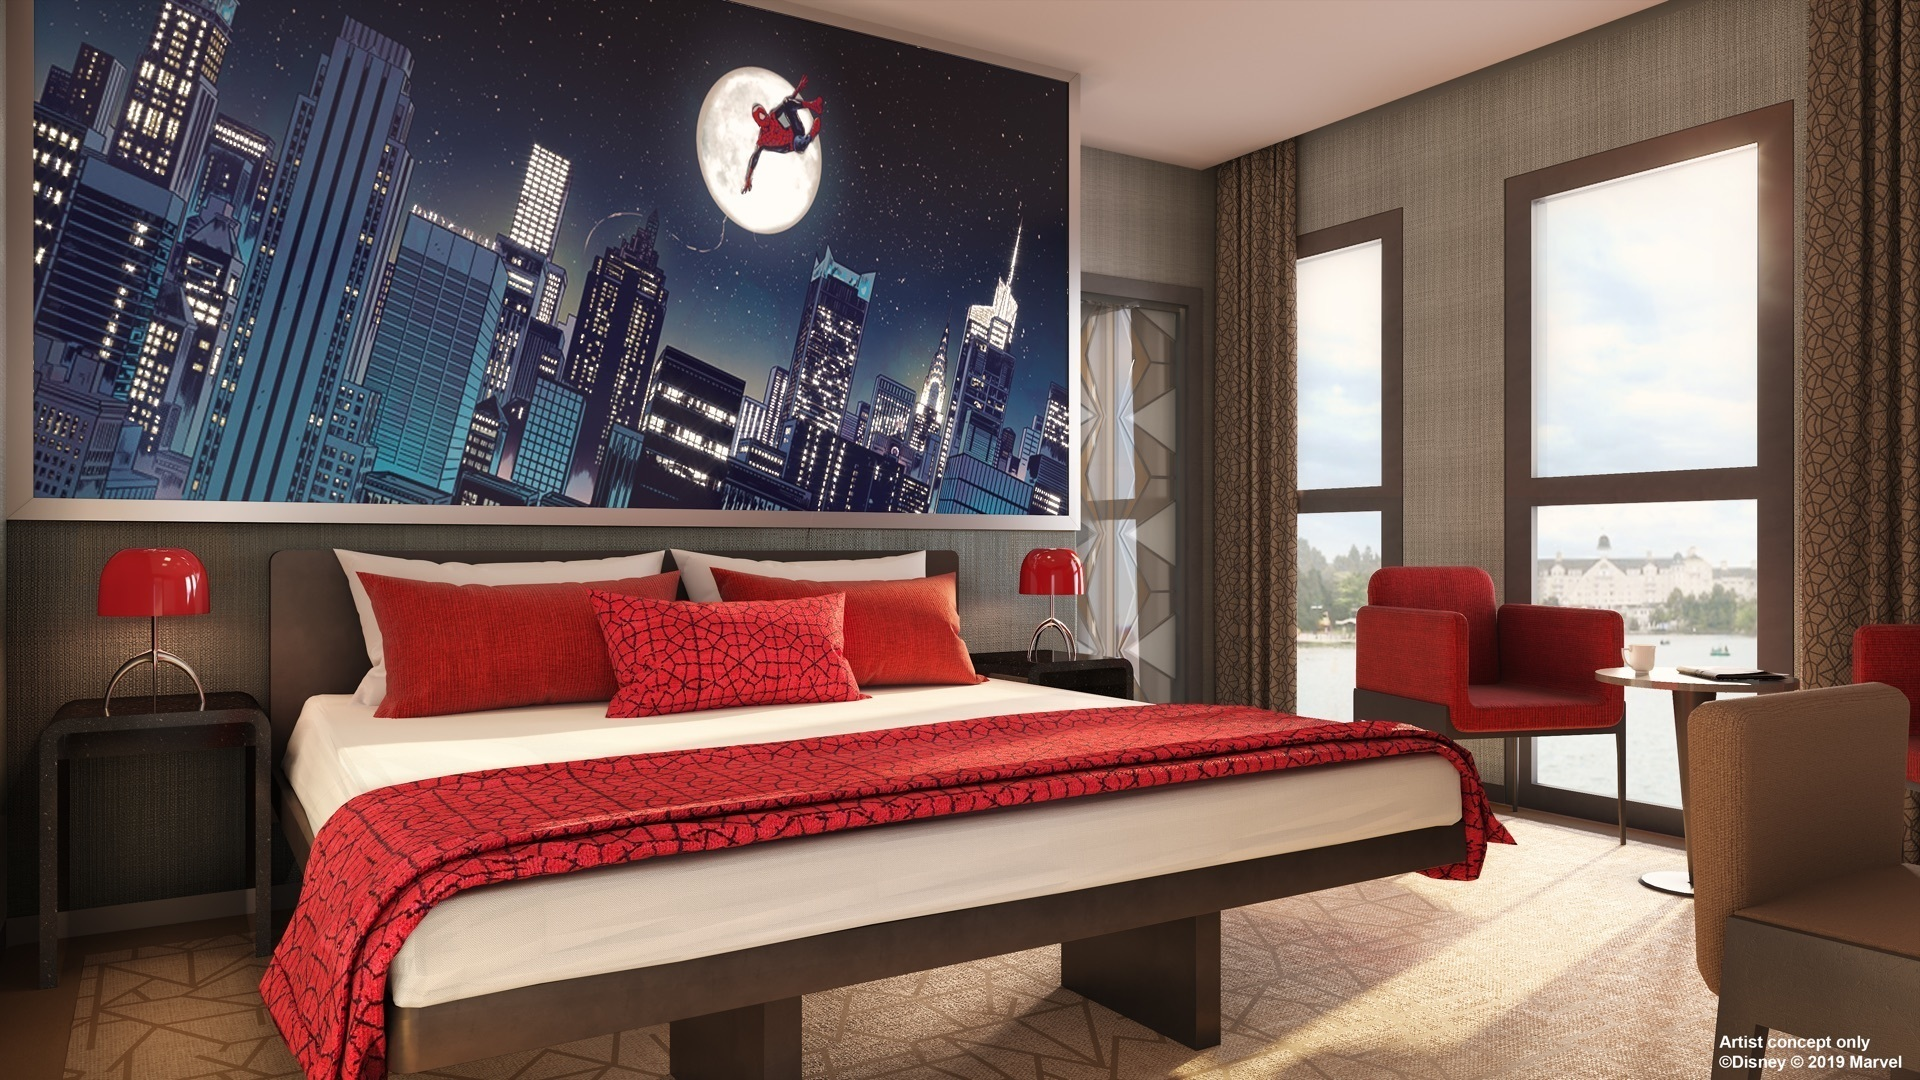 stanza del nuovo Disney's Hotel New York – The Art of Marvel a Disneyland Paris